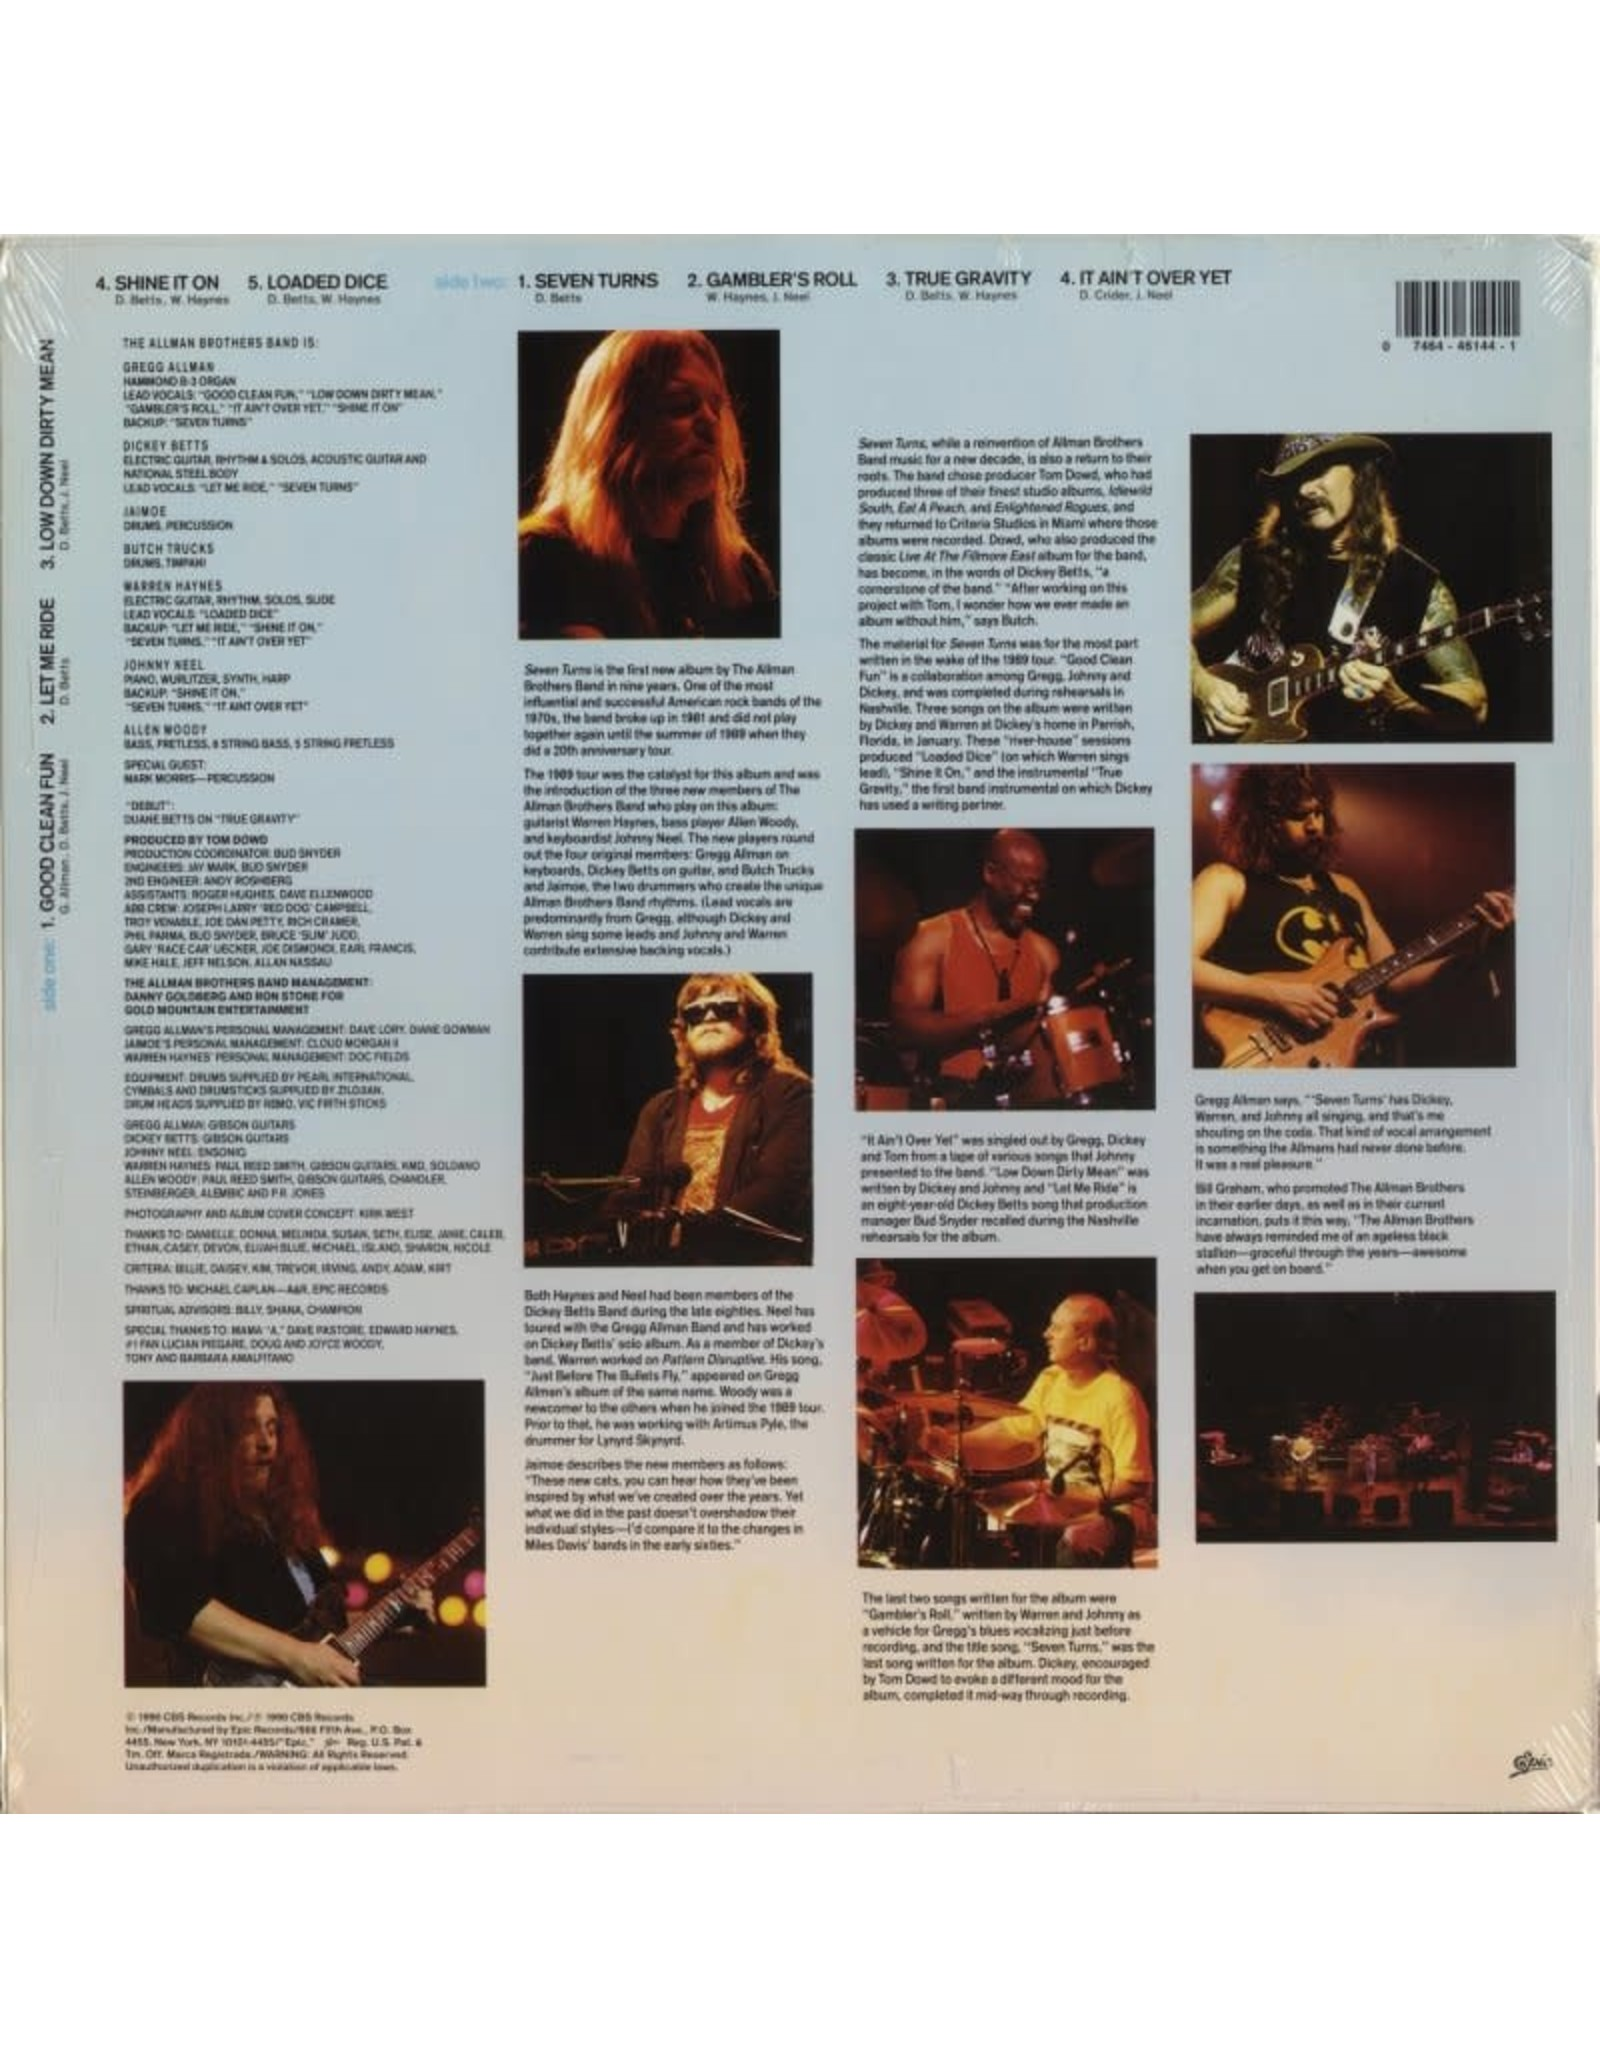 Allman Brothers Band - Seven Turns (Music On Vinyl) [Clear Vinyl]